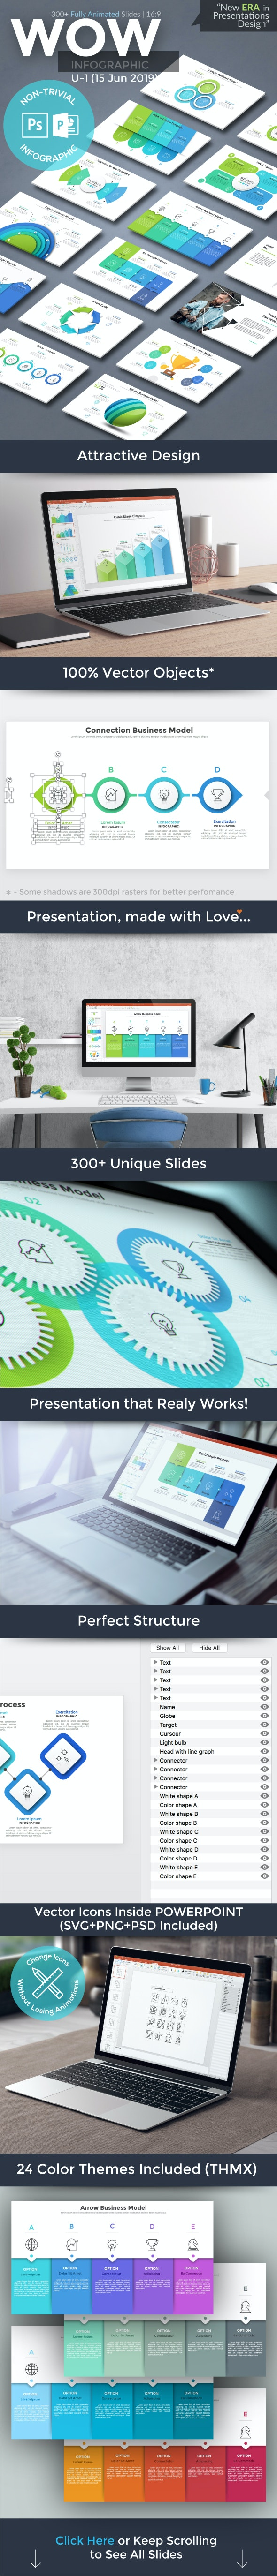 Wow Slides For Powerpoint. U-1 (180 New Slides!) - Business PowerPoint Templates